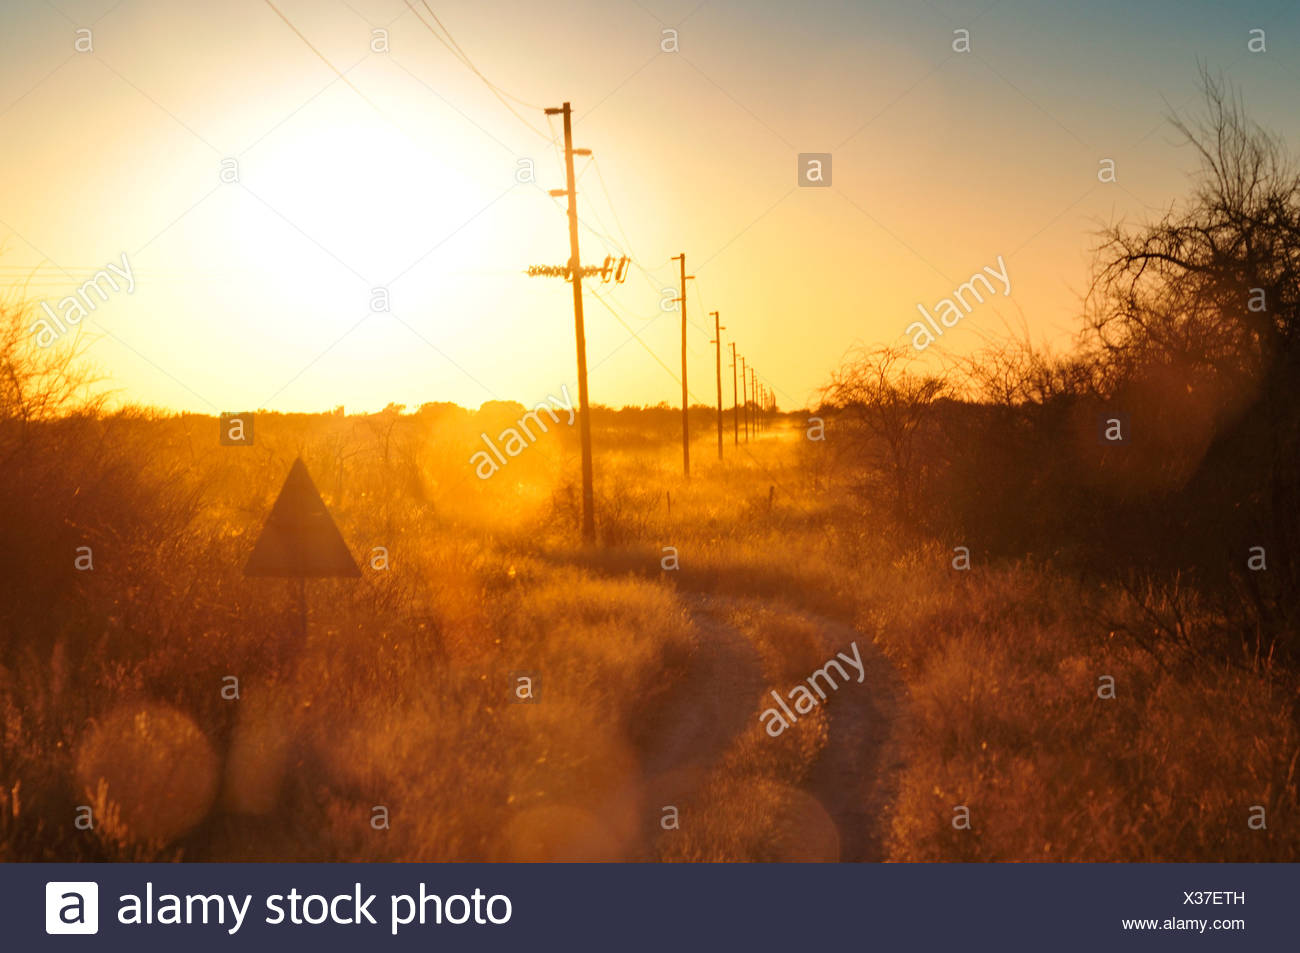 Africa, Namibia, Warm, clan, dusk, electrical, wires, field, high voltage, horizontal - Stock Image